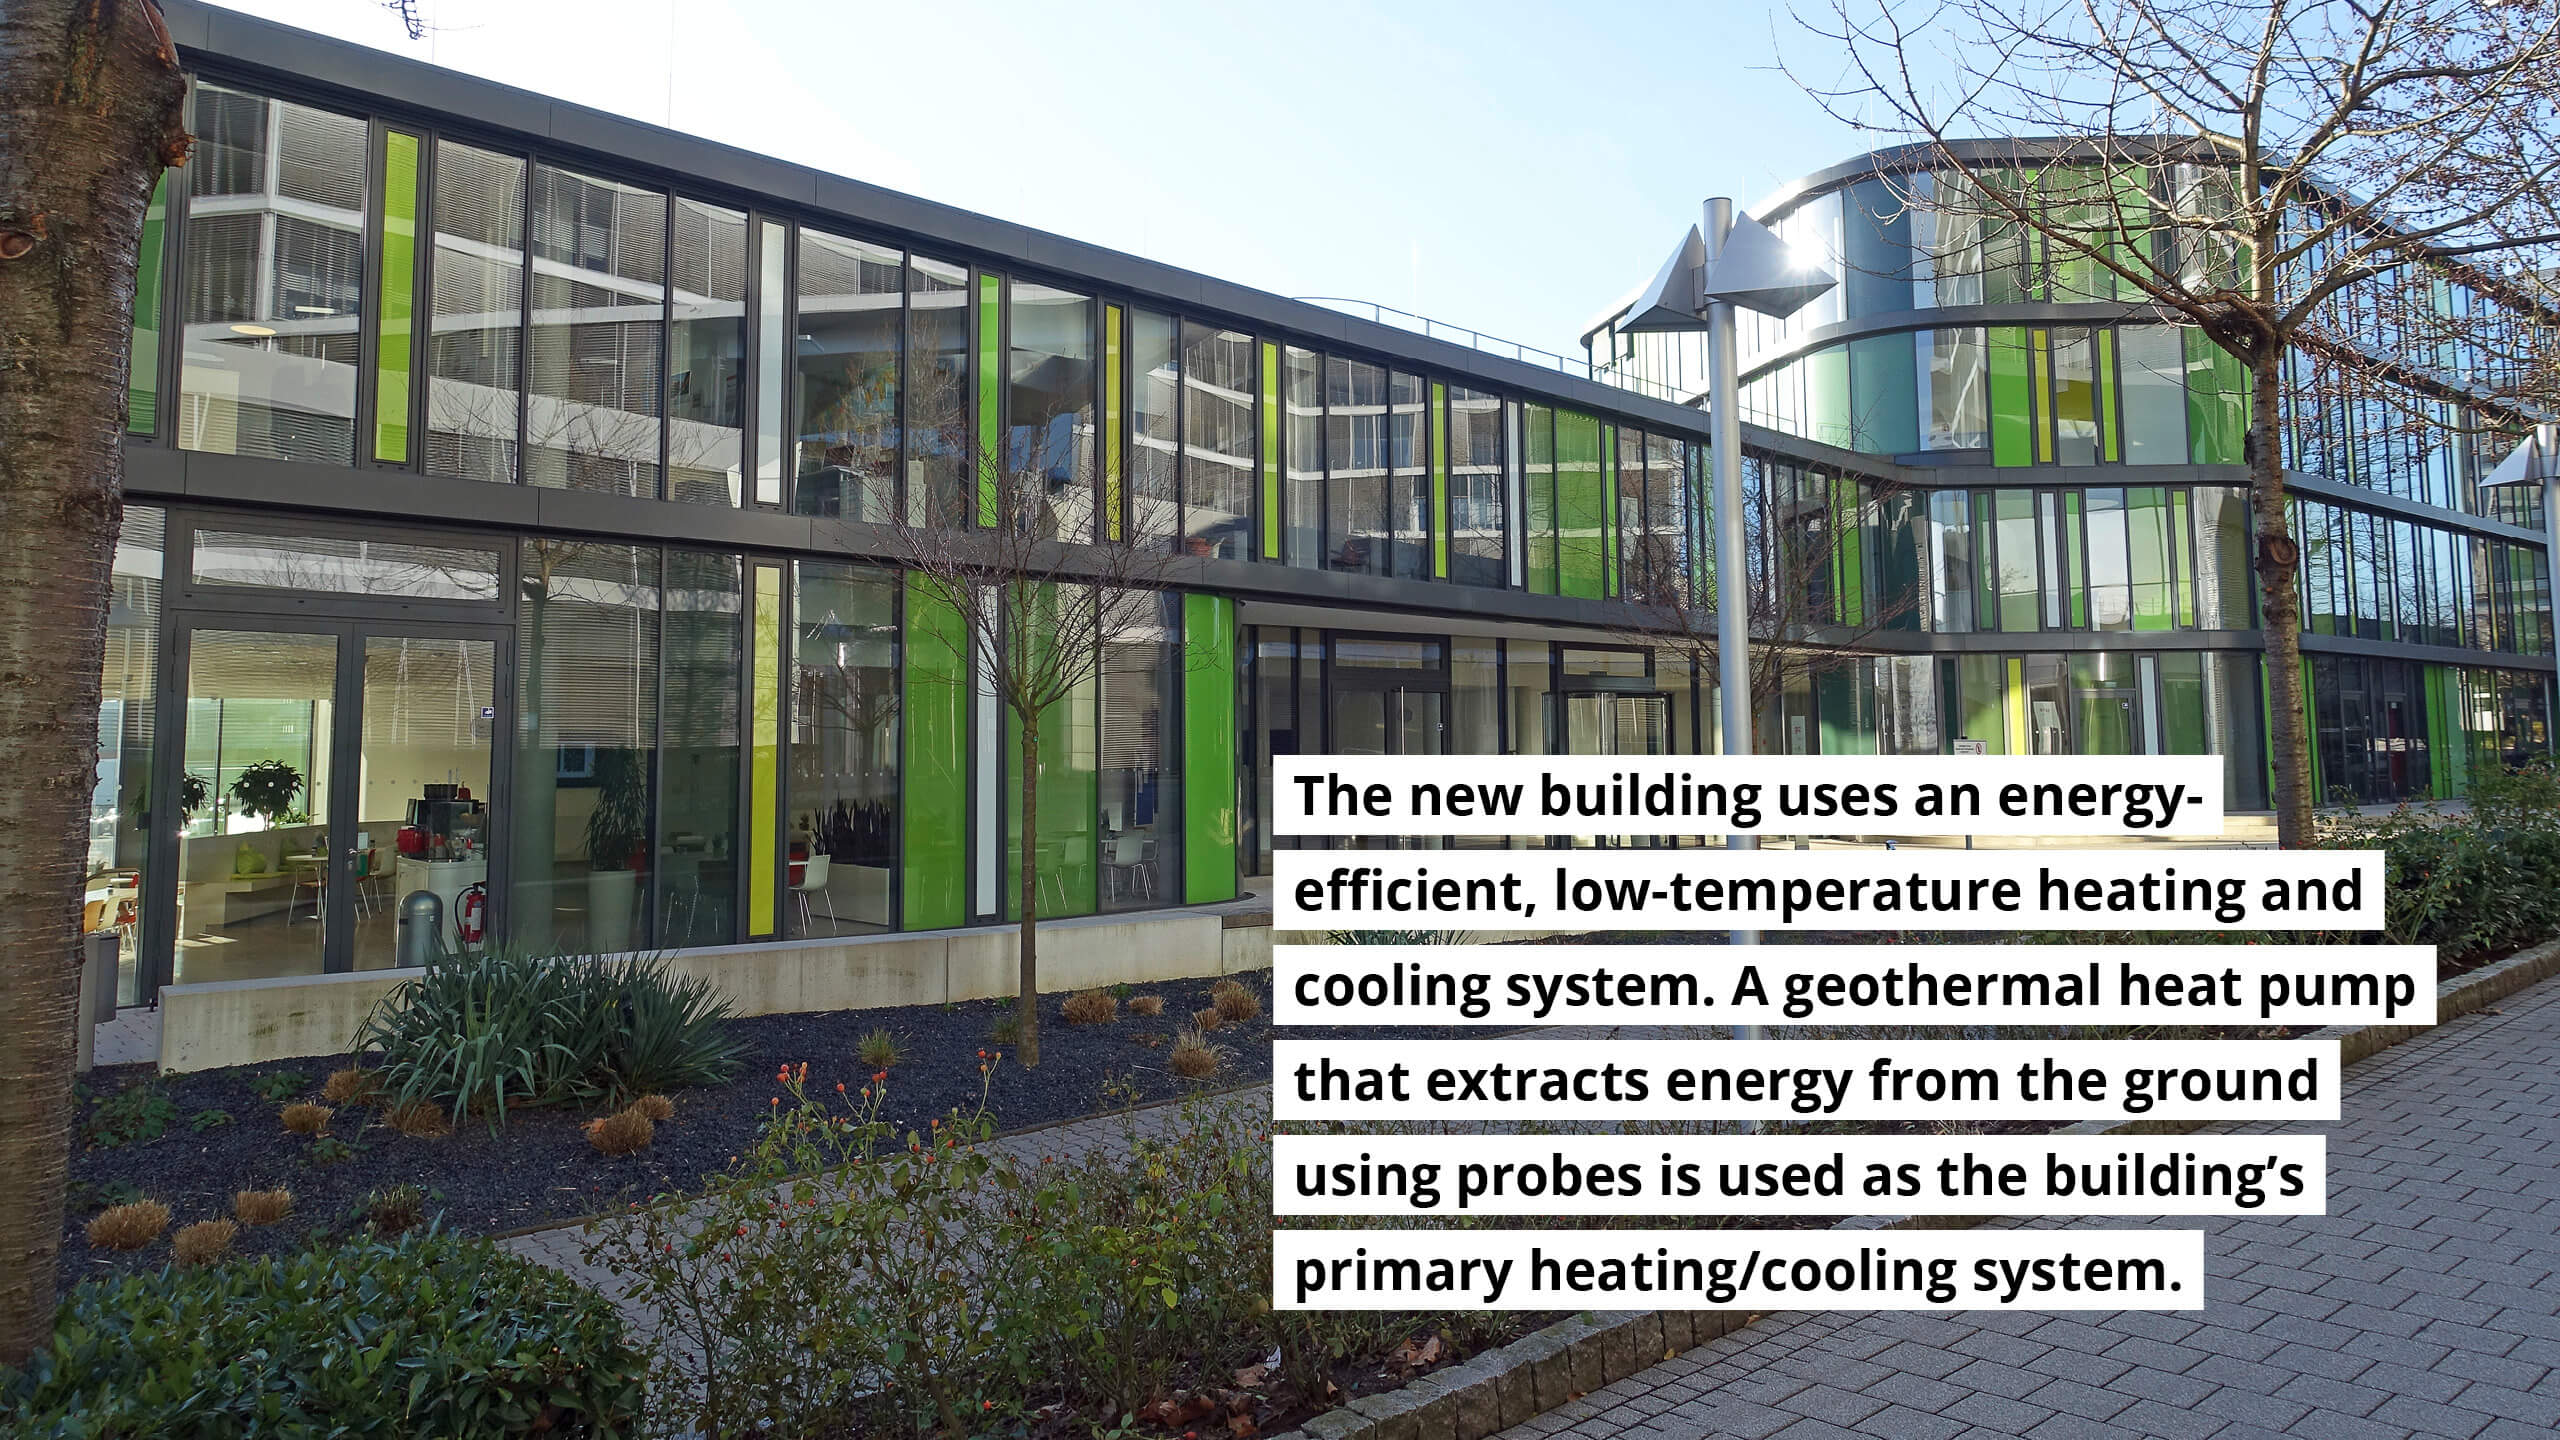 The new building uses an energy-efficient, low-temperature heating and cooling system by a geothermal heat pump that extracts energy from the ground.